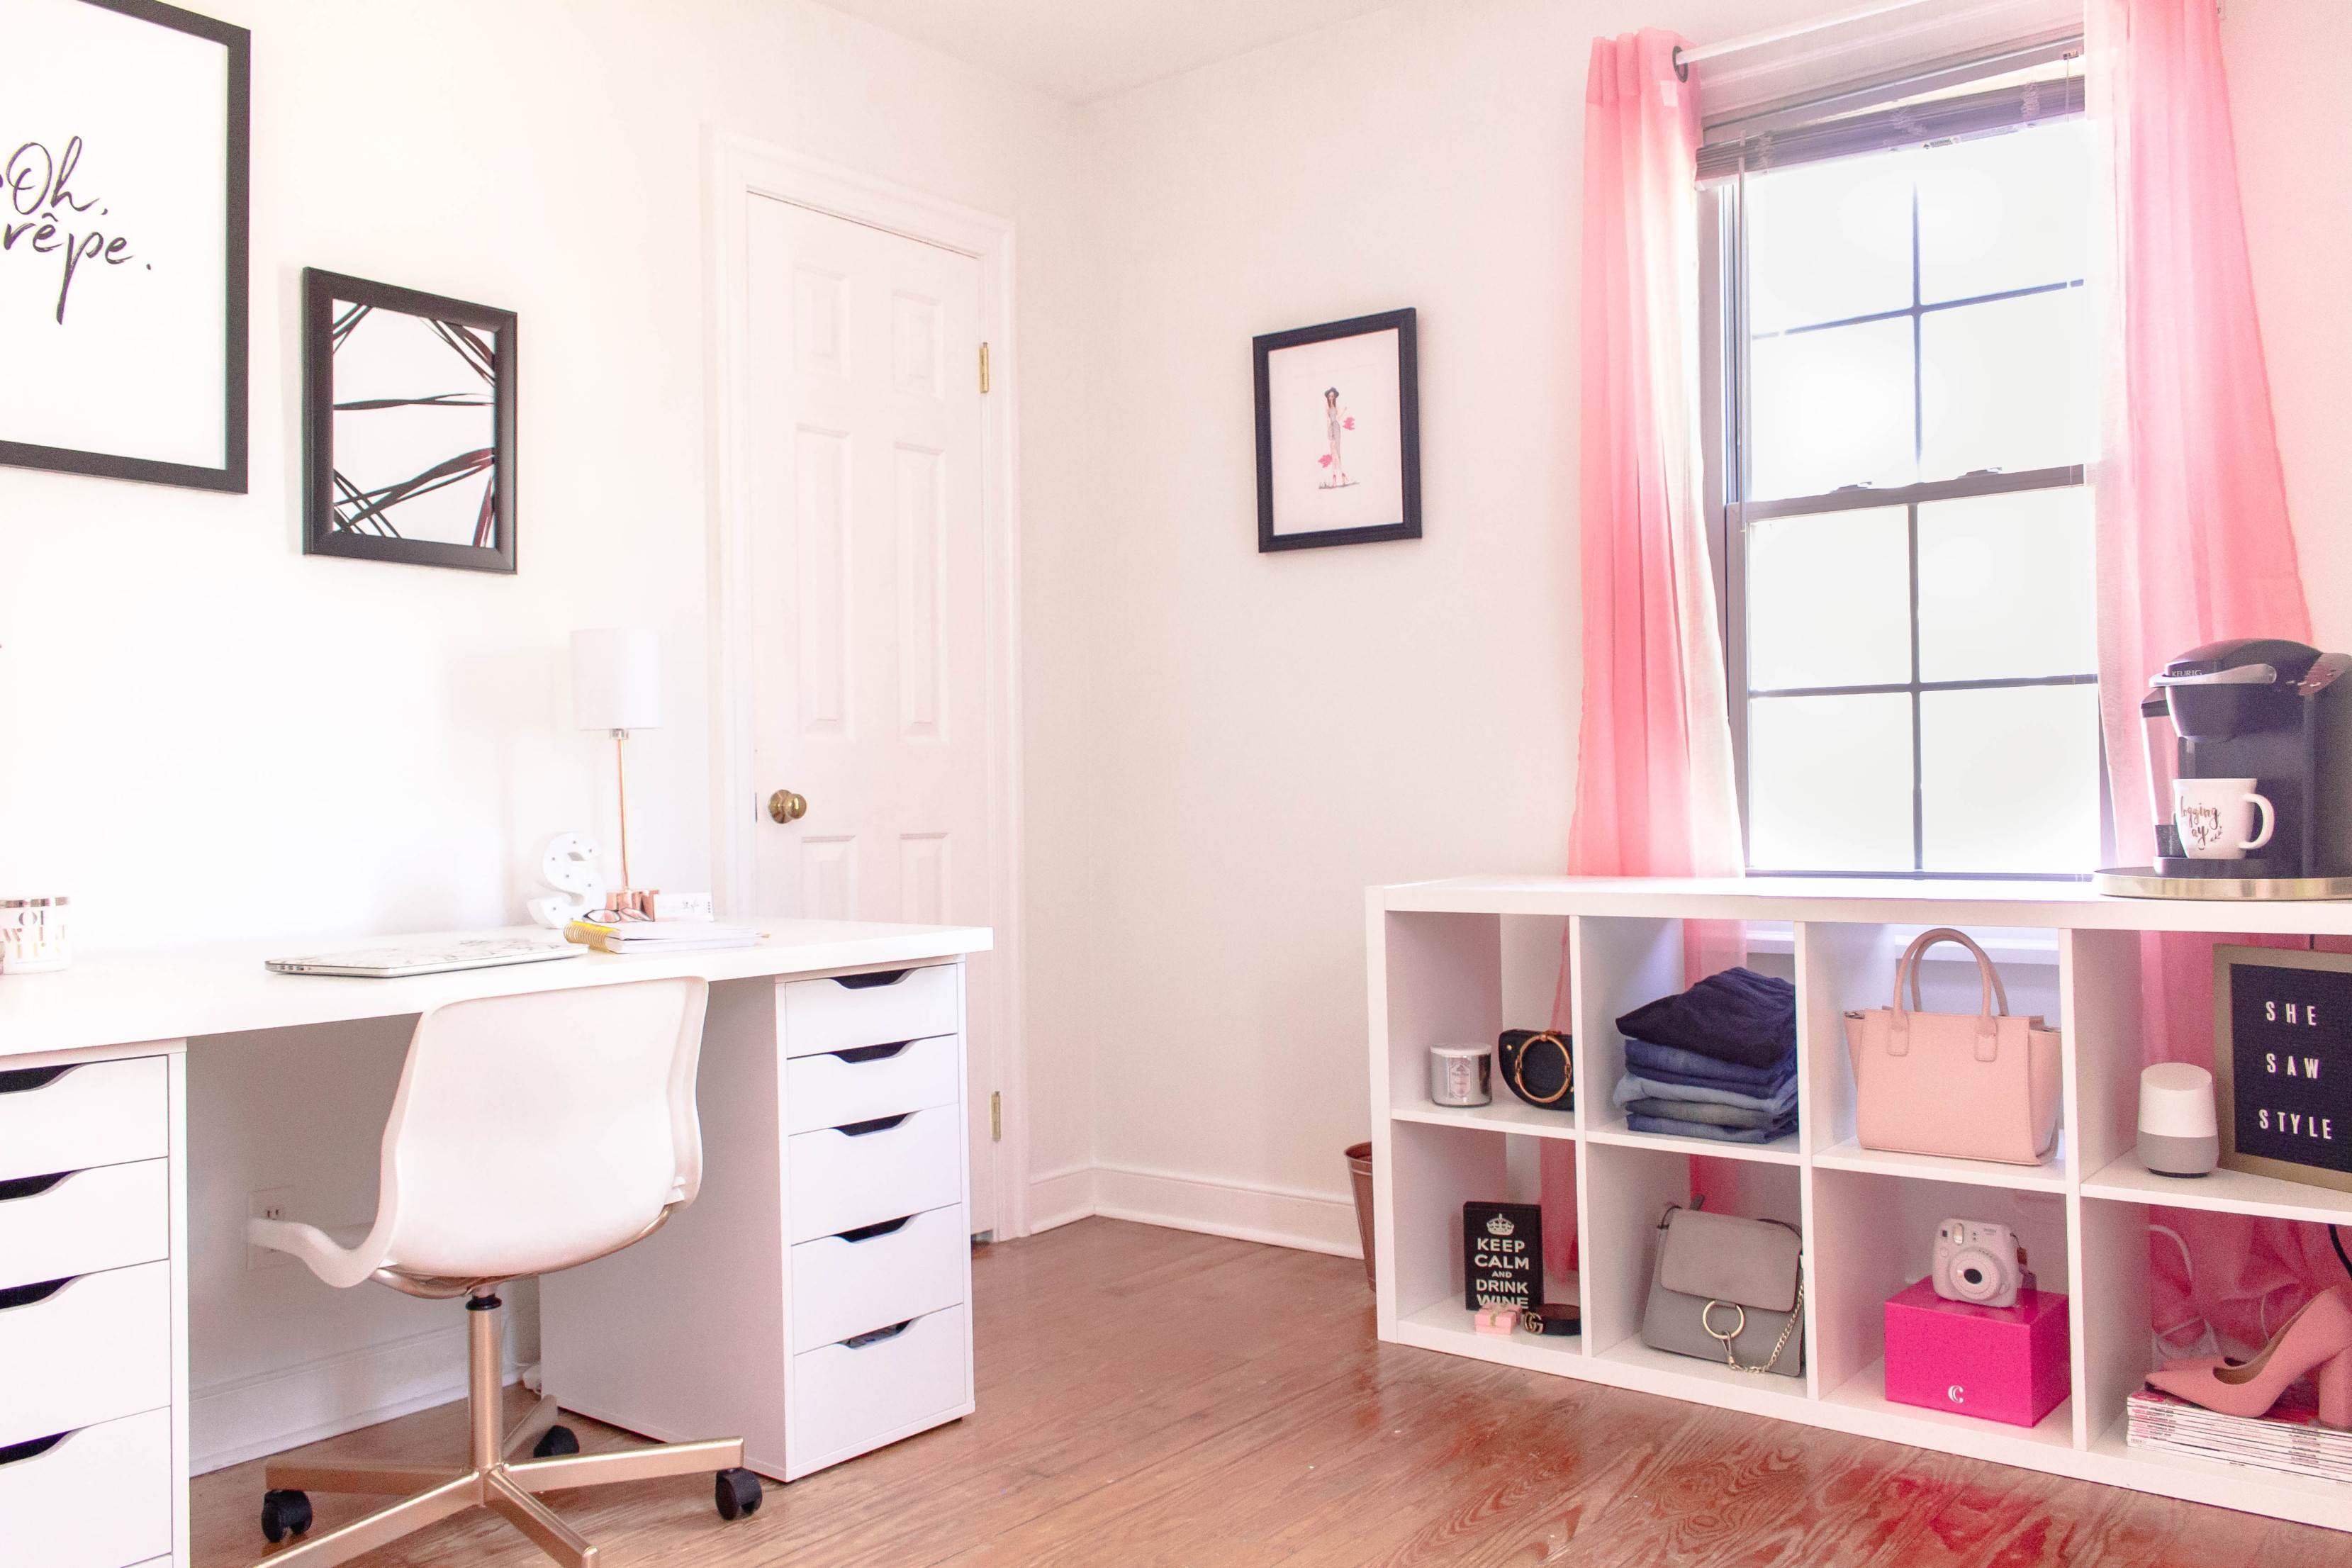 A Feminine and Affordable Cloffice (Closet + Office Space)